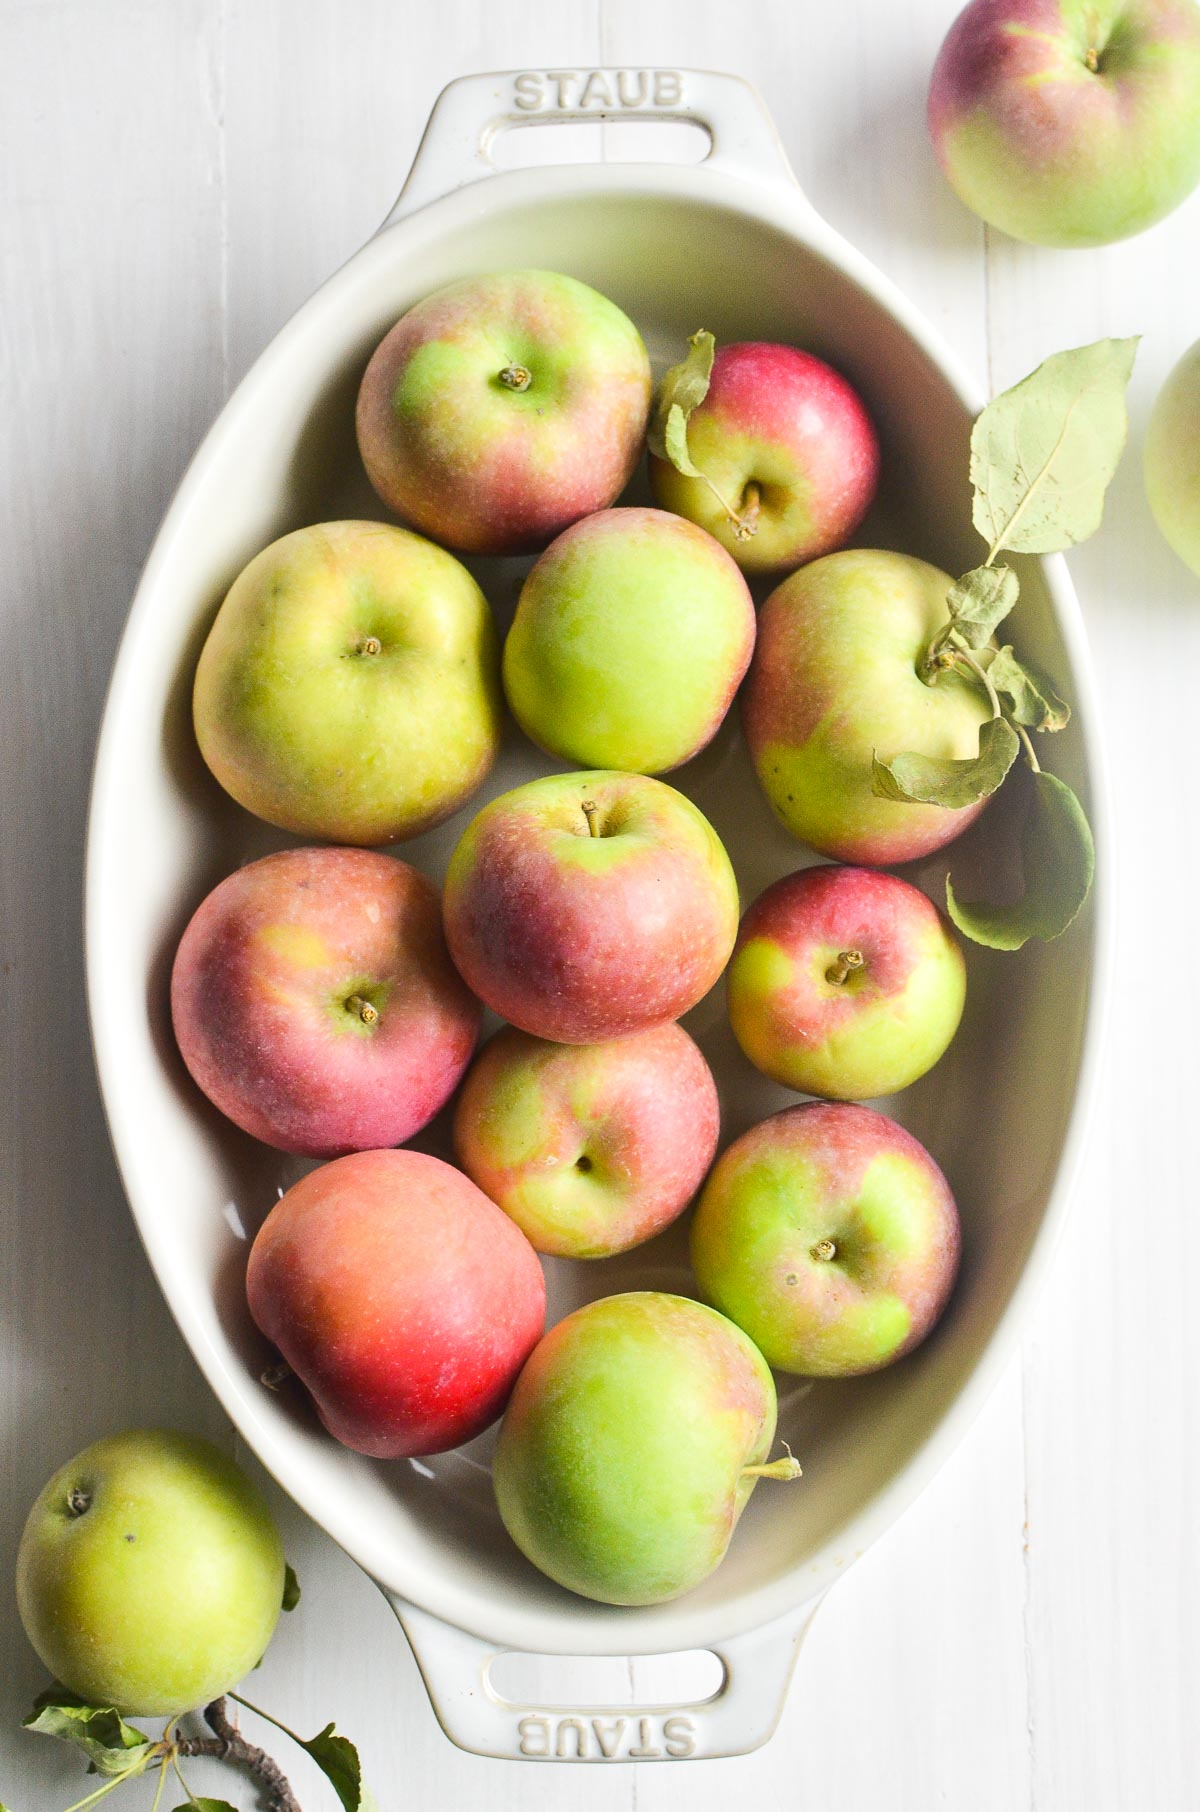 A white oval baking dish filled with apples on a white wooden surface.